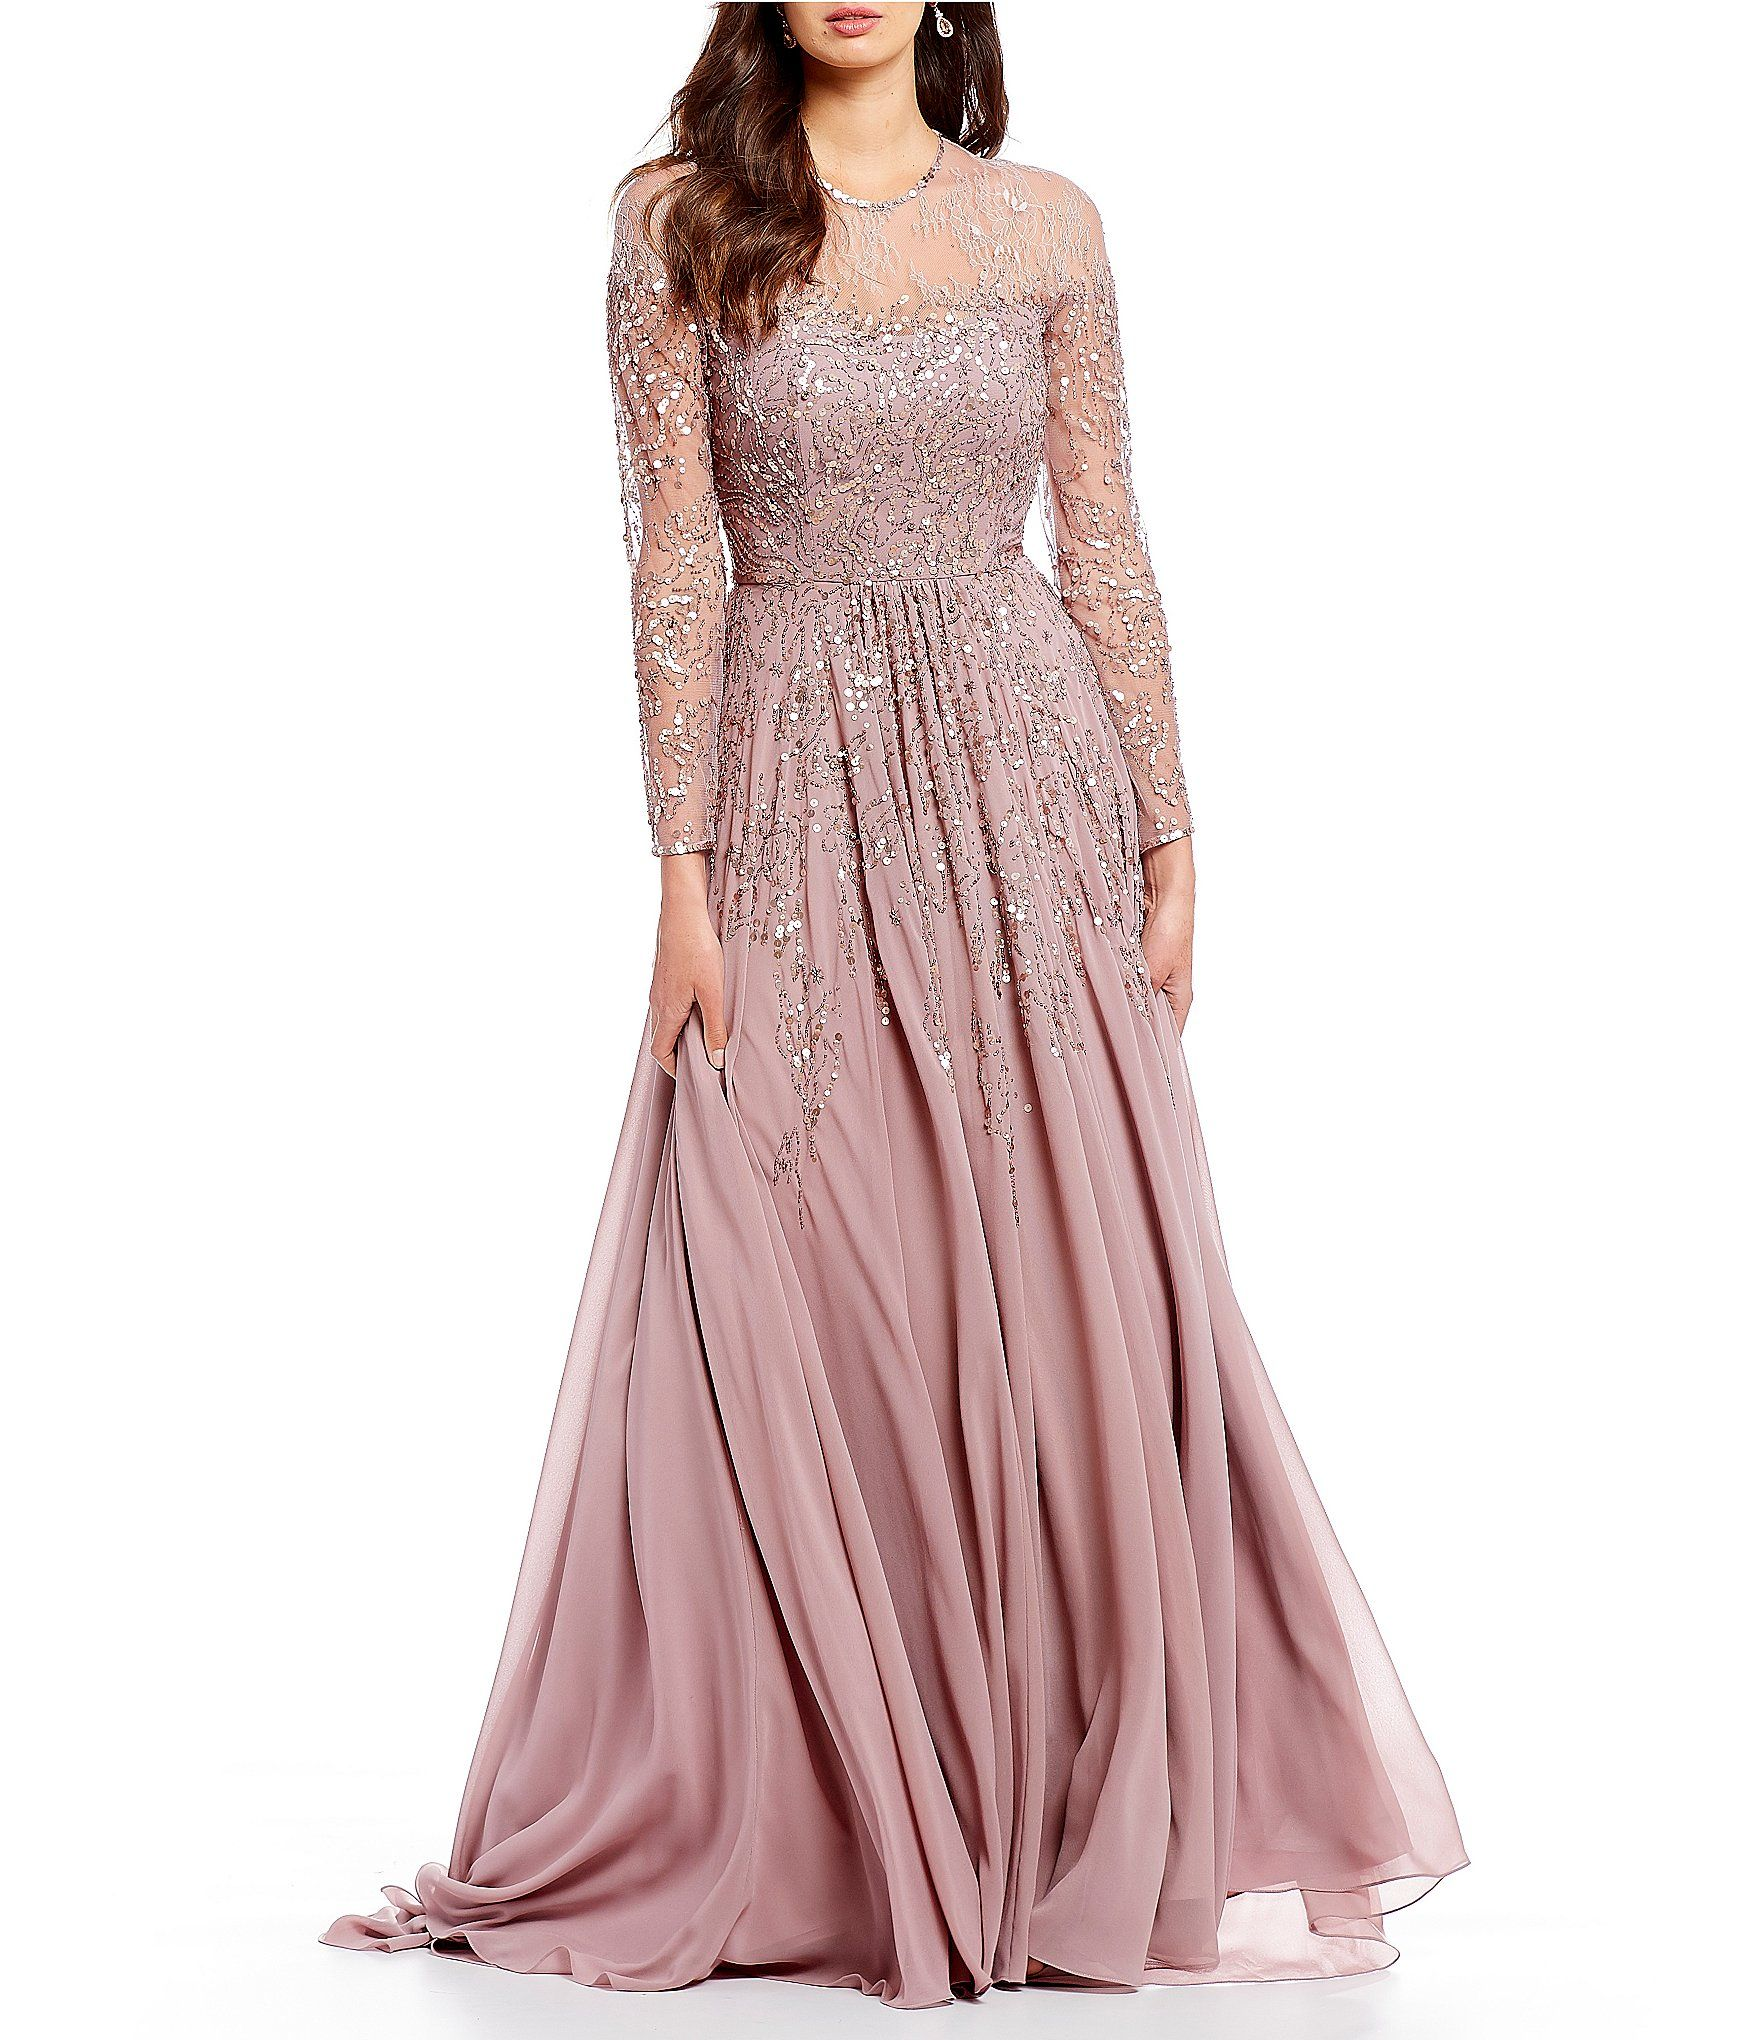 Terani Couture Sheer Lace Sleeve Sequin Embellished Chiffon Ball ...